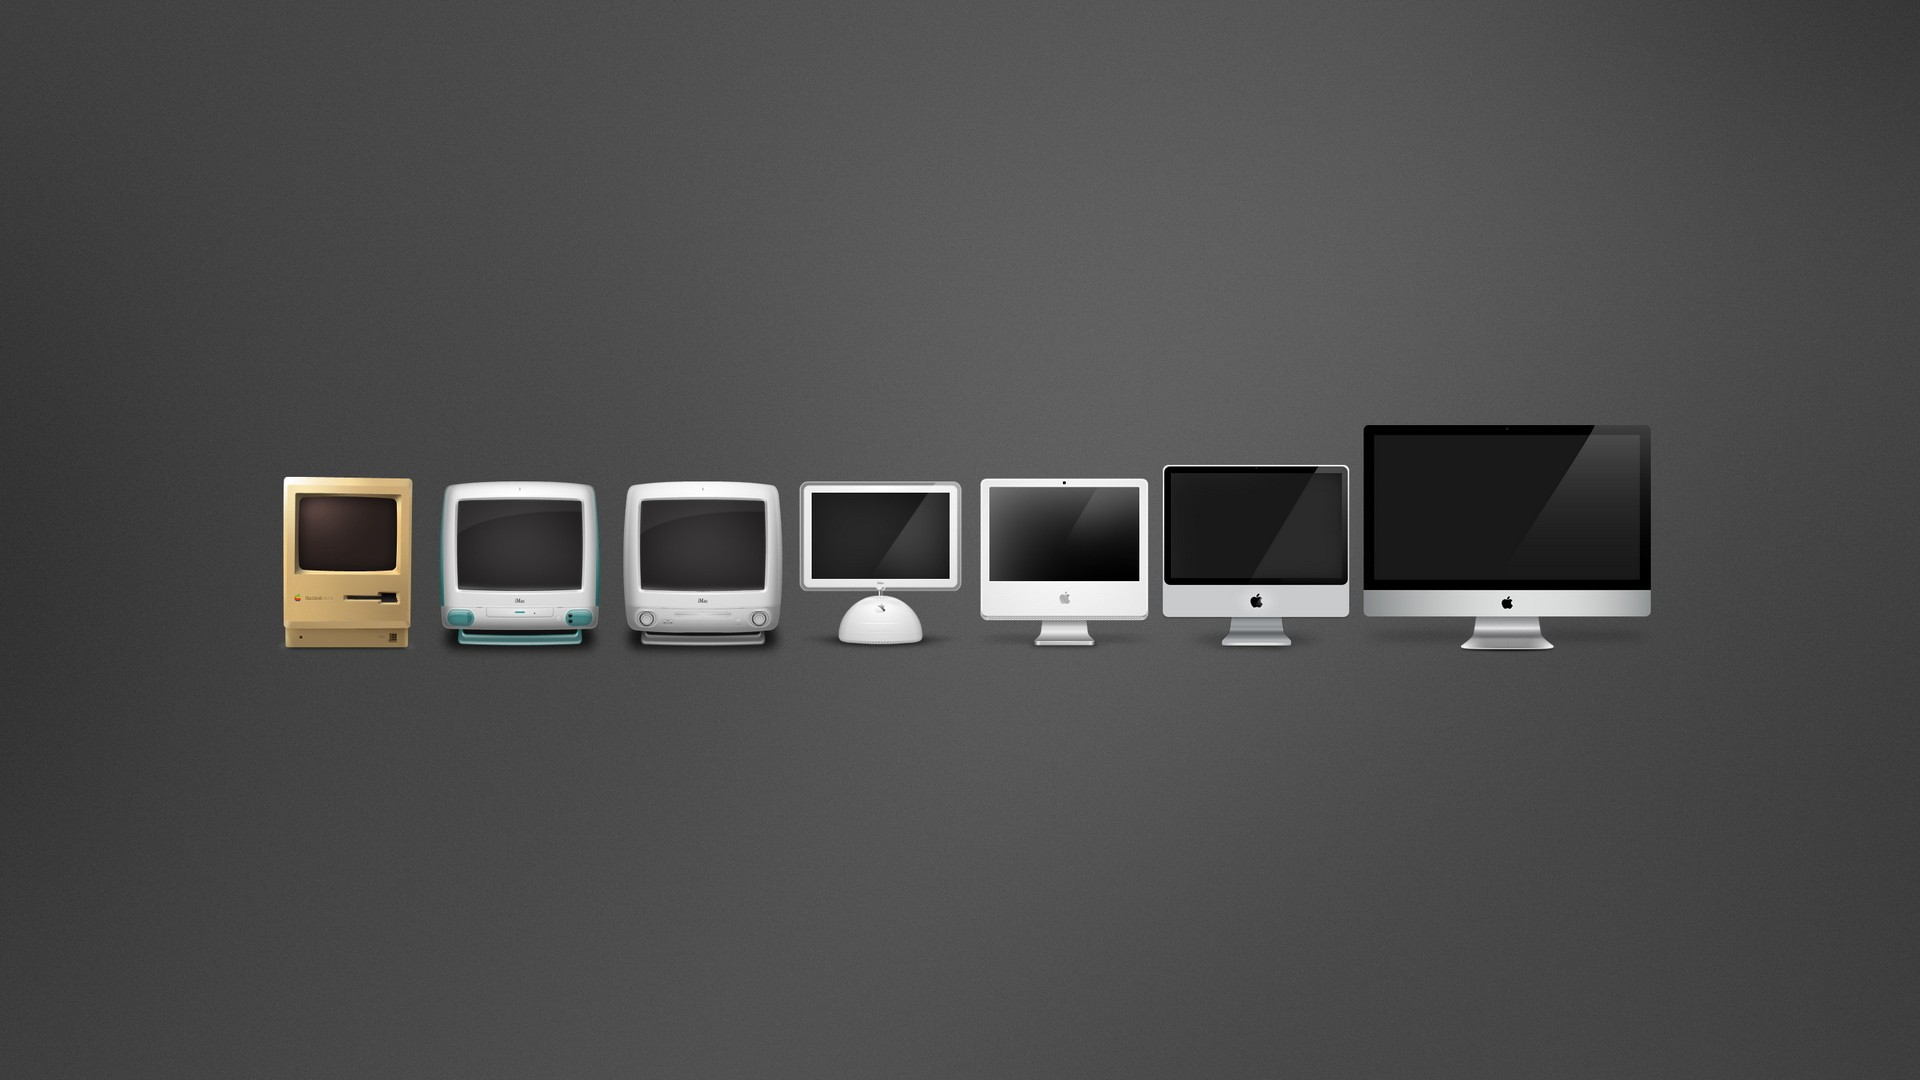 1920x1080 Macintosh Evolution desktop PC and Mac wallpaper 1920x1080